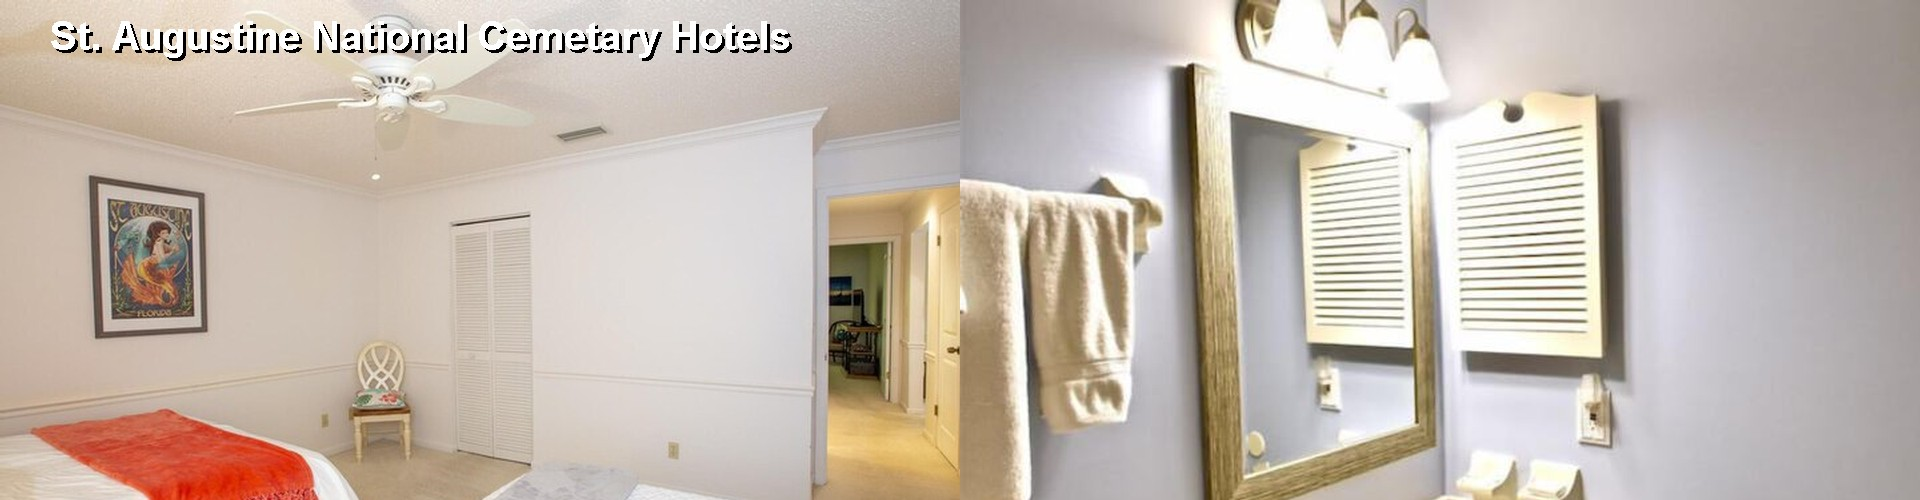 5 Best Hotels near St. Augustine National Cemetary